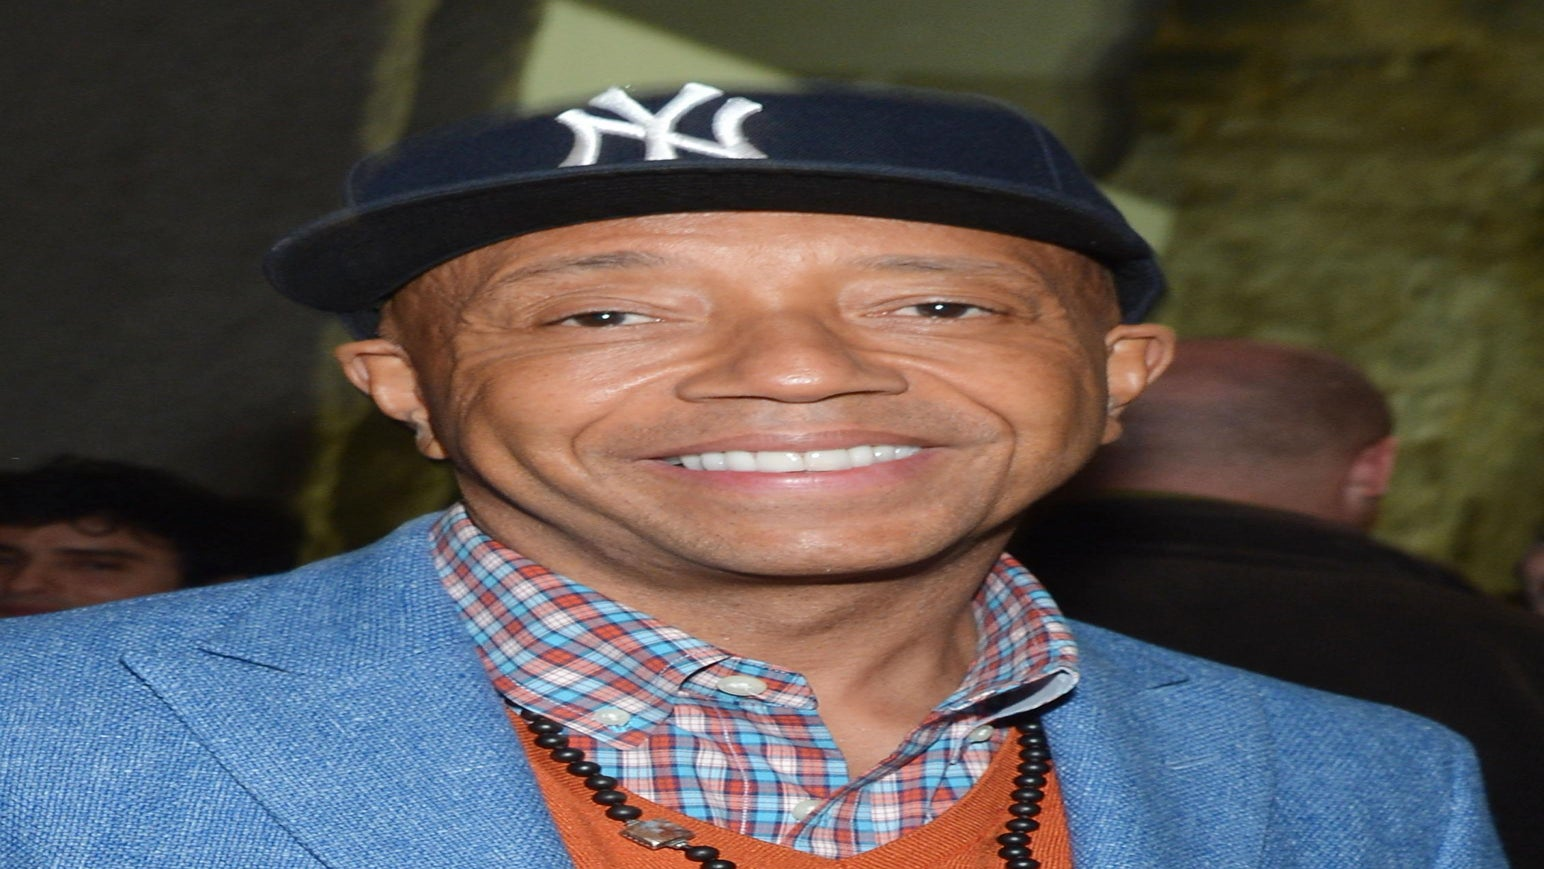 Russell Simmons' Debit Card Company Under Investigation After Glitch Leaves Thousands Without Access to Accounts